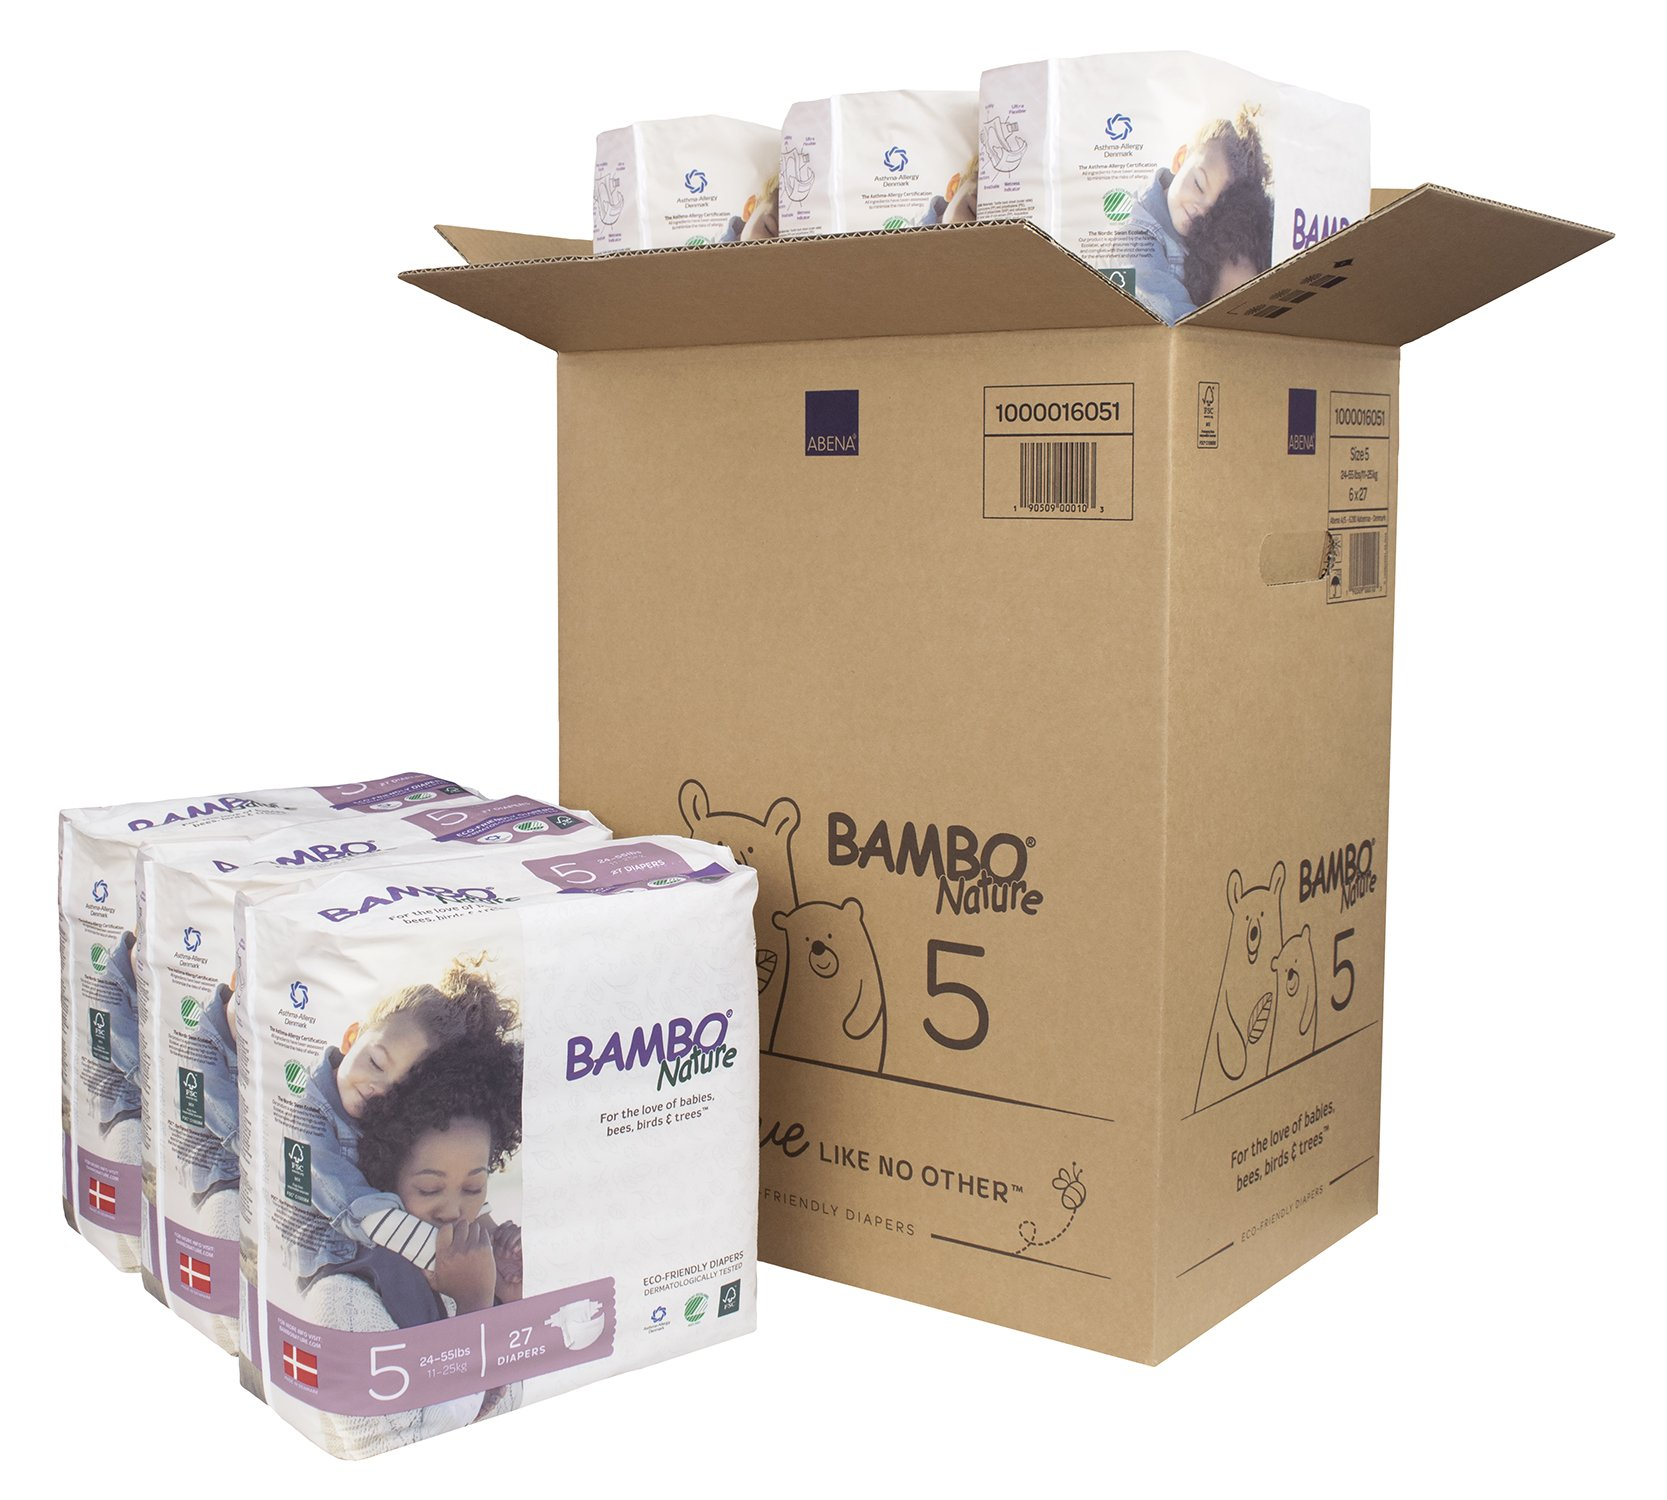 Bambo Nature Eco Friendly Premium Baby Diapers for Sensitive Skin, Size 5 (24-55 lbs), 162 Count (6 Packs of 27) by Bambo Nature (Image #1)